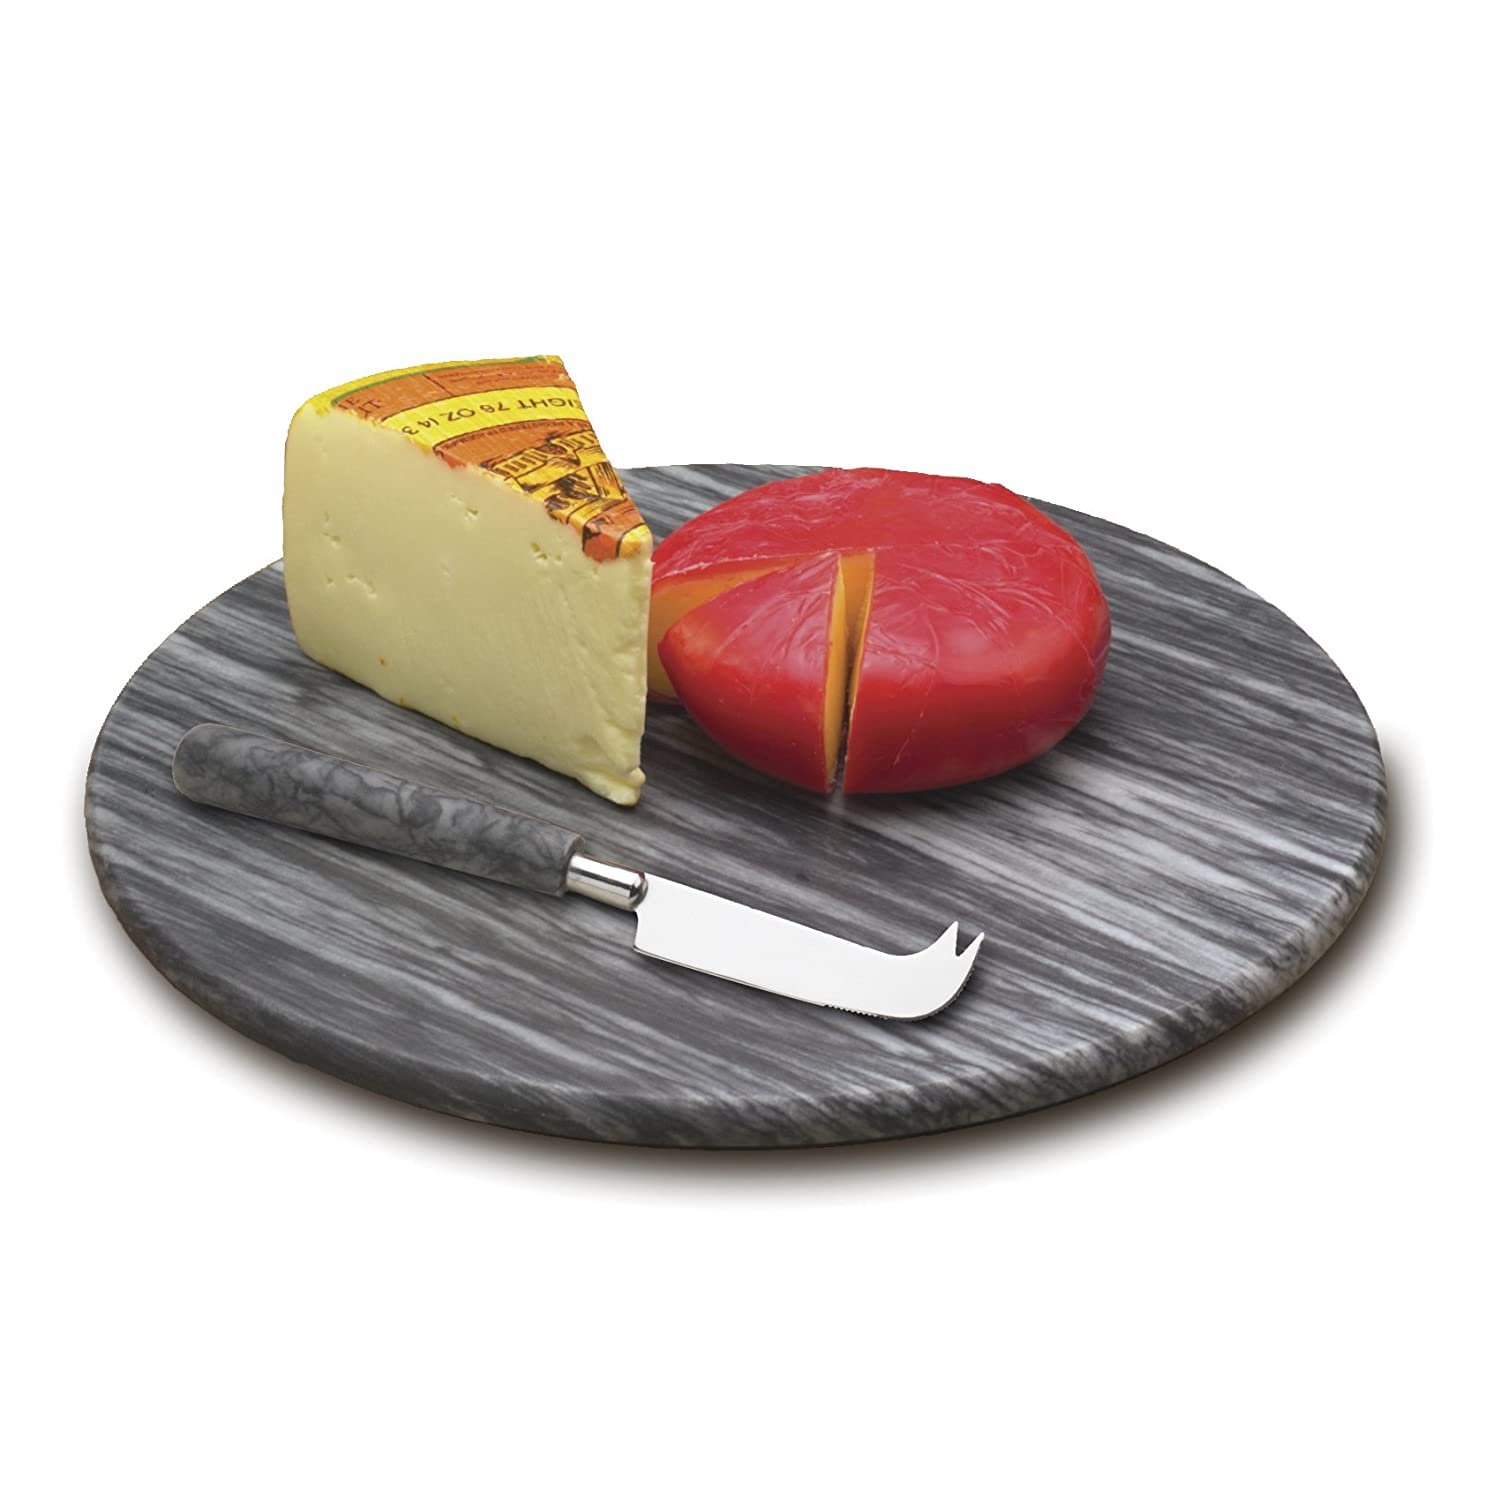 RSVP 2 Piece Grey Marble Cheese Board and Knife Set raymond weil maestro 2869 stc 65001 page 5